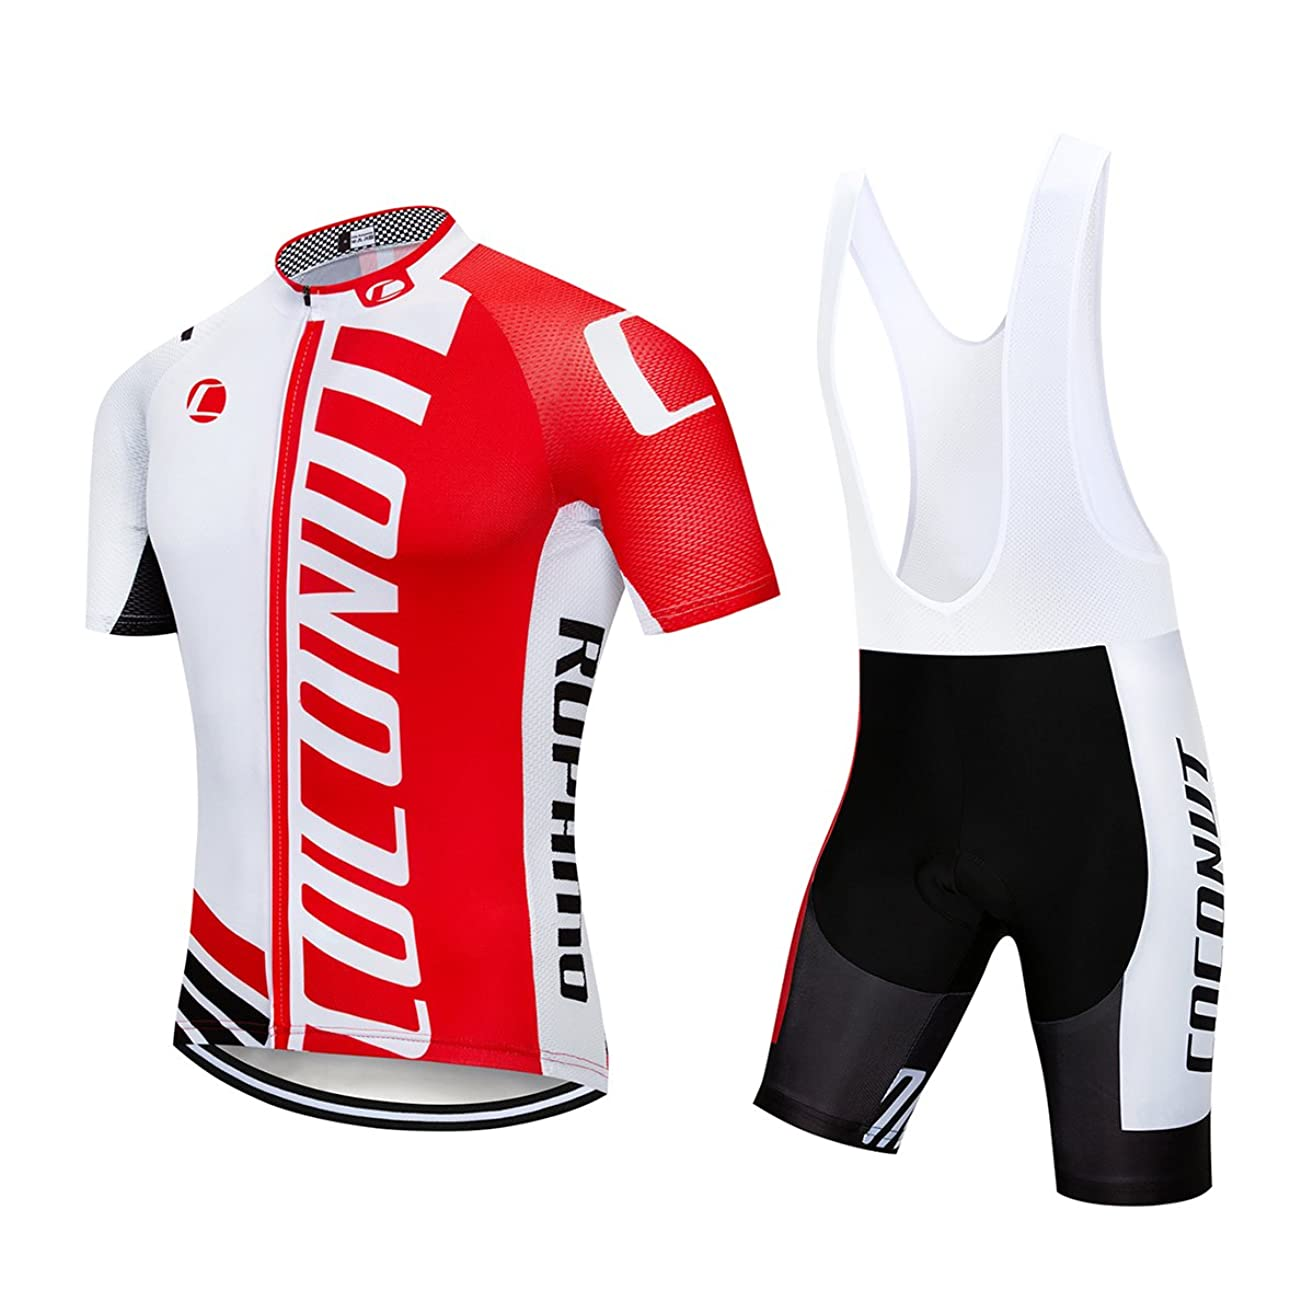 Men's Cycling Jersey Short Sleeve Full Zip Bike Clothing Set Quick-Dry Bib Shorts with 3D Gel Padded